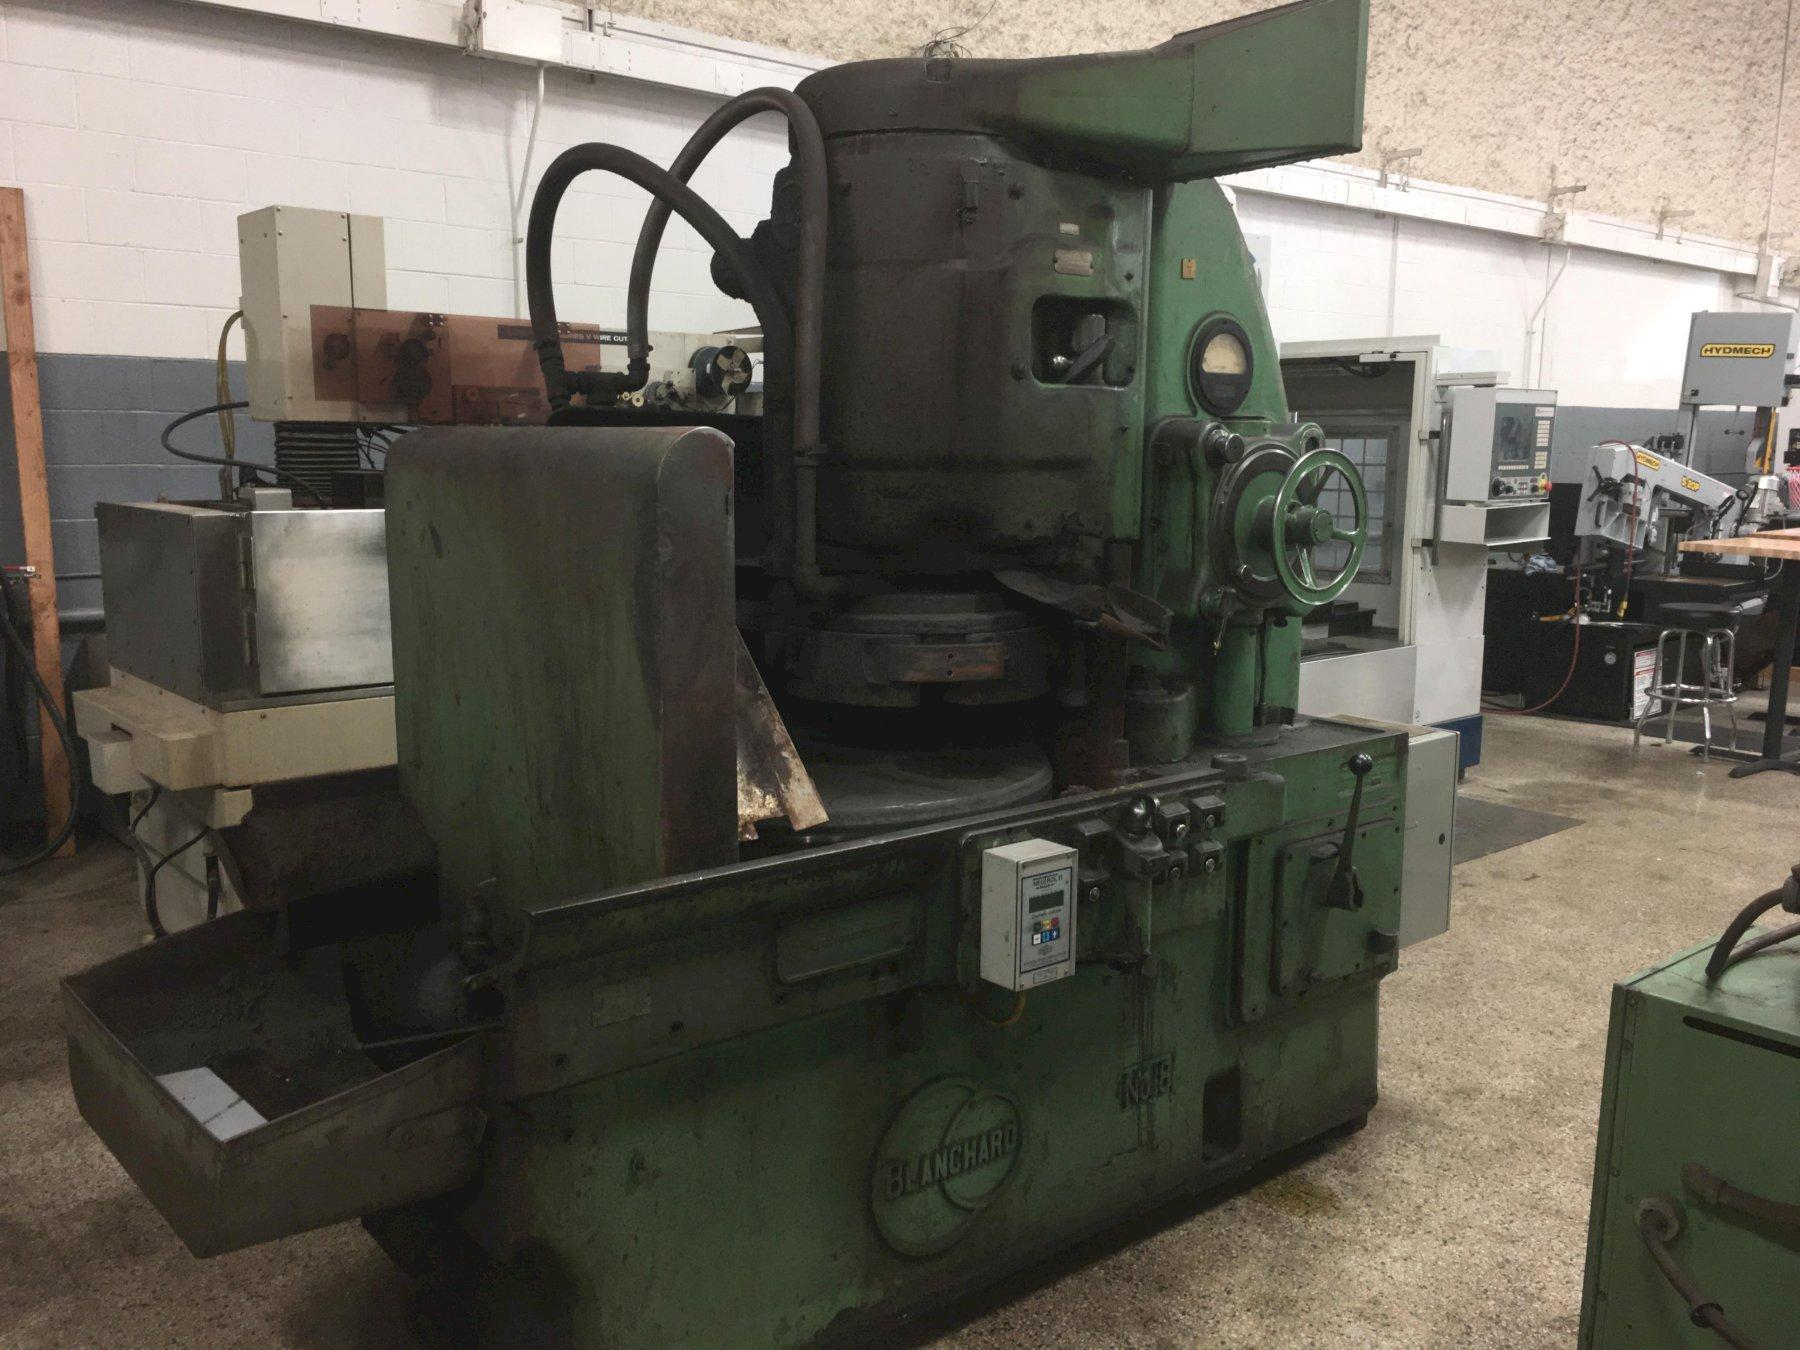 Blanchard # 18 Vertical Spindle Rotary Surface Grinder, S/N 5257.